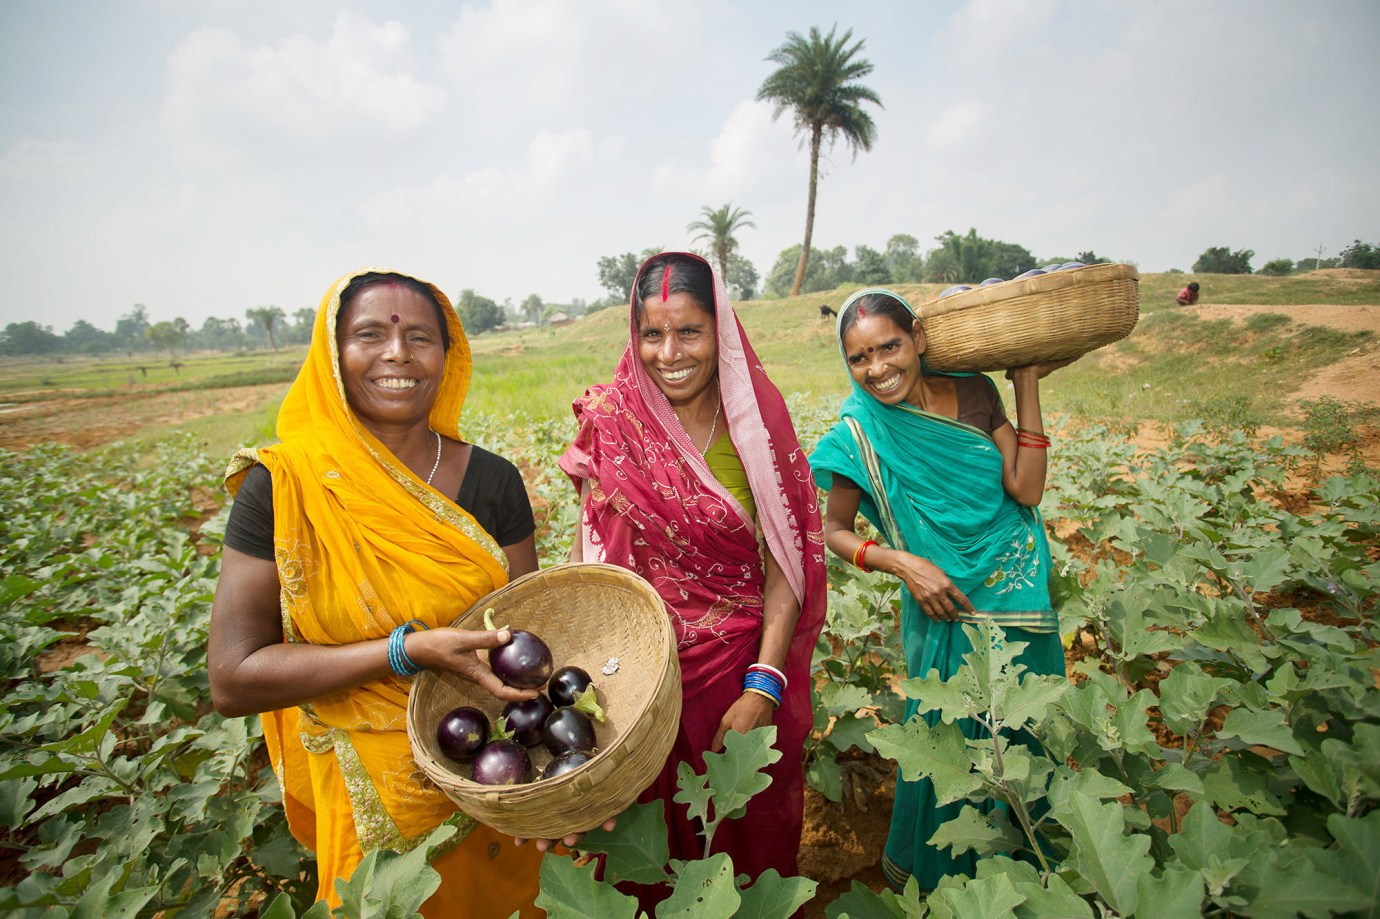 Women harvest eggplant together in Bihar, India.